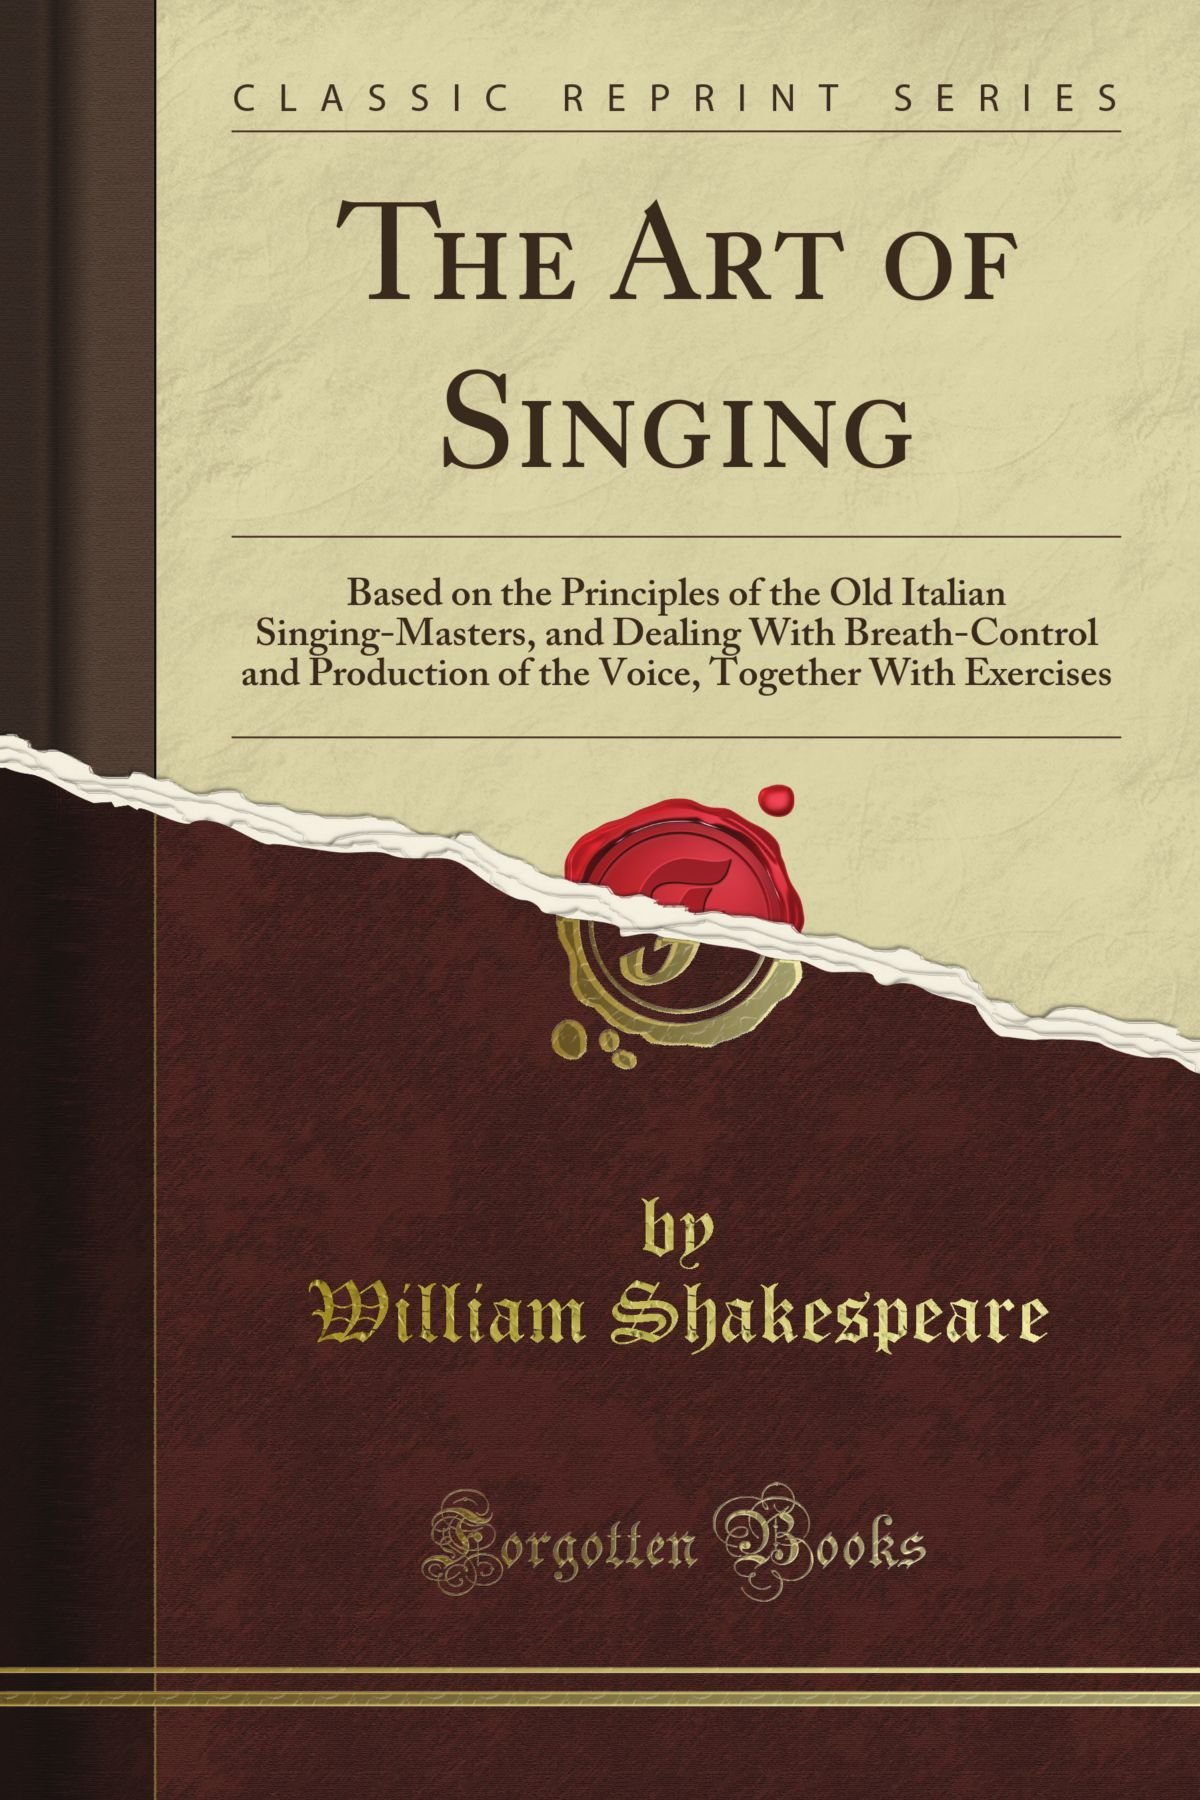 Download The Art of Singing: Based on the Principles of the Old Italian Singing-Masters, and Dealing With Breath-Control and Production of the Voice, Together With Exercises (Classic Reprint) pdf epub